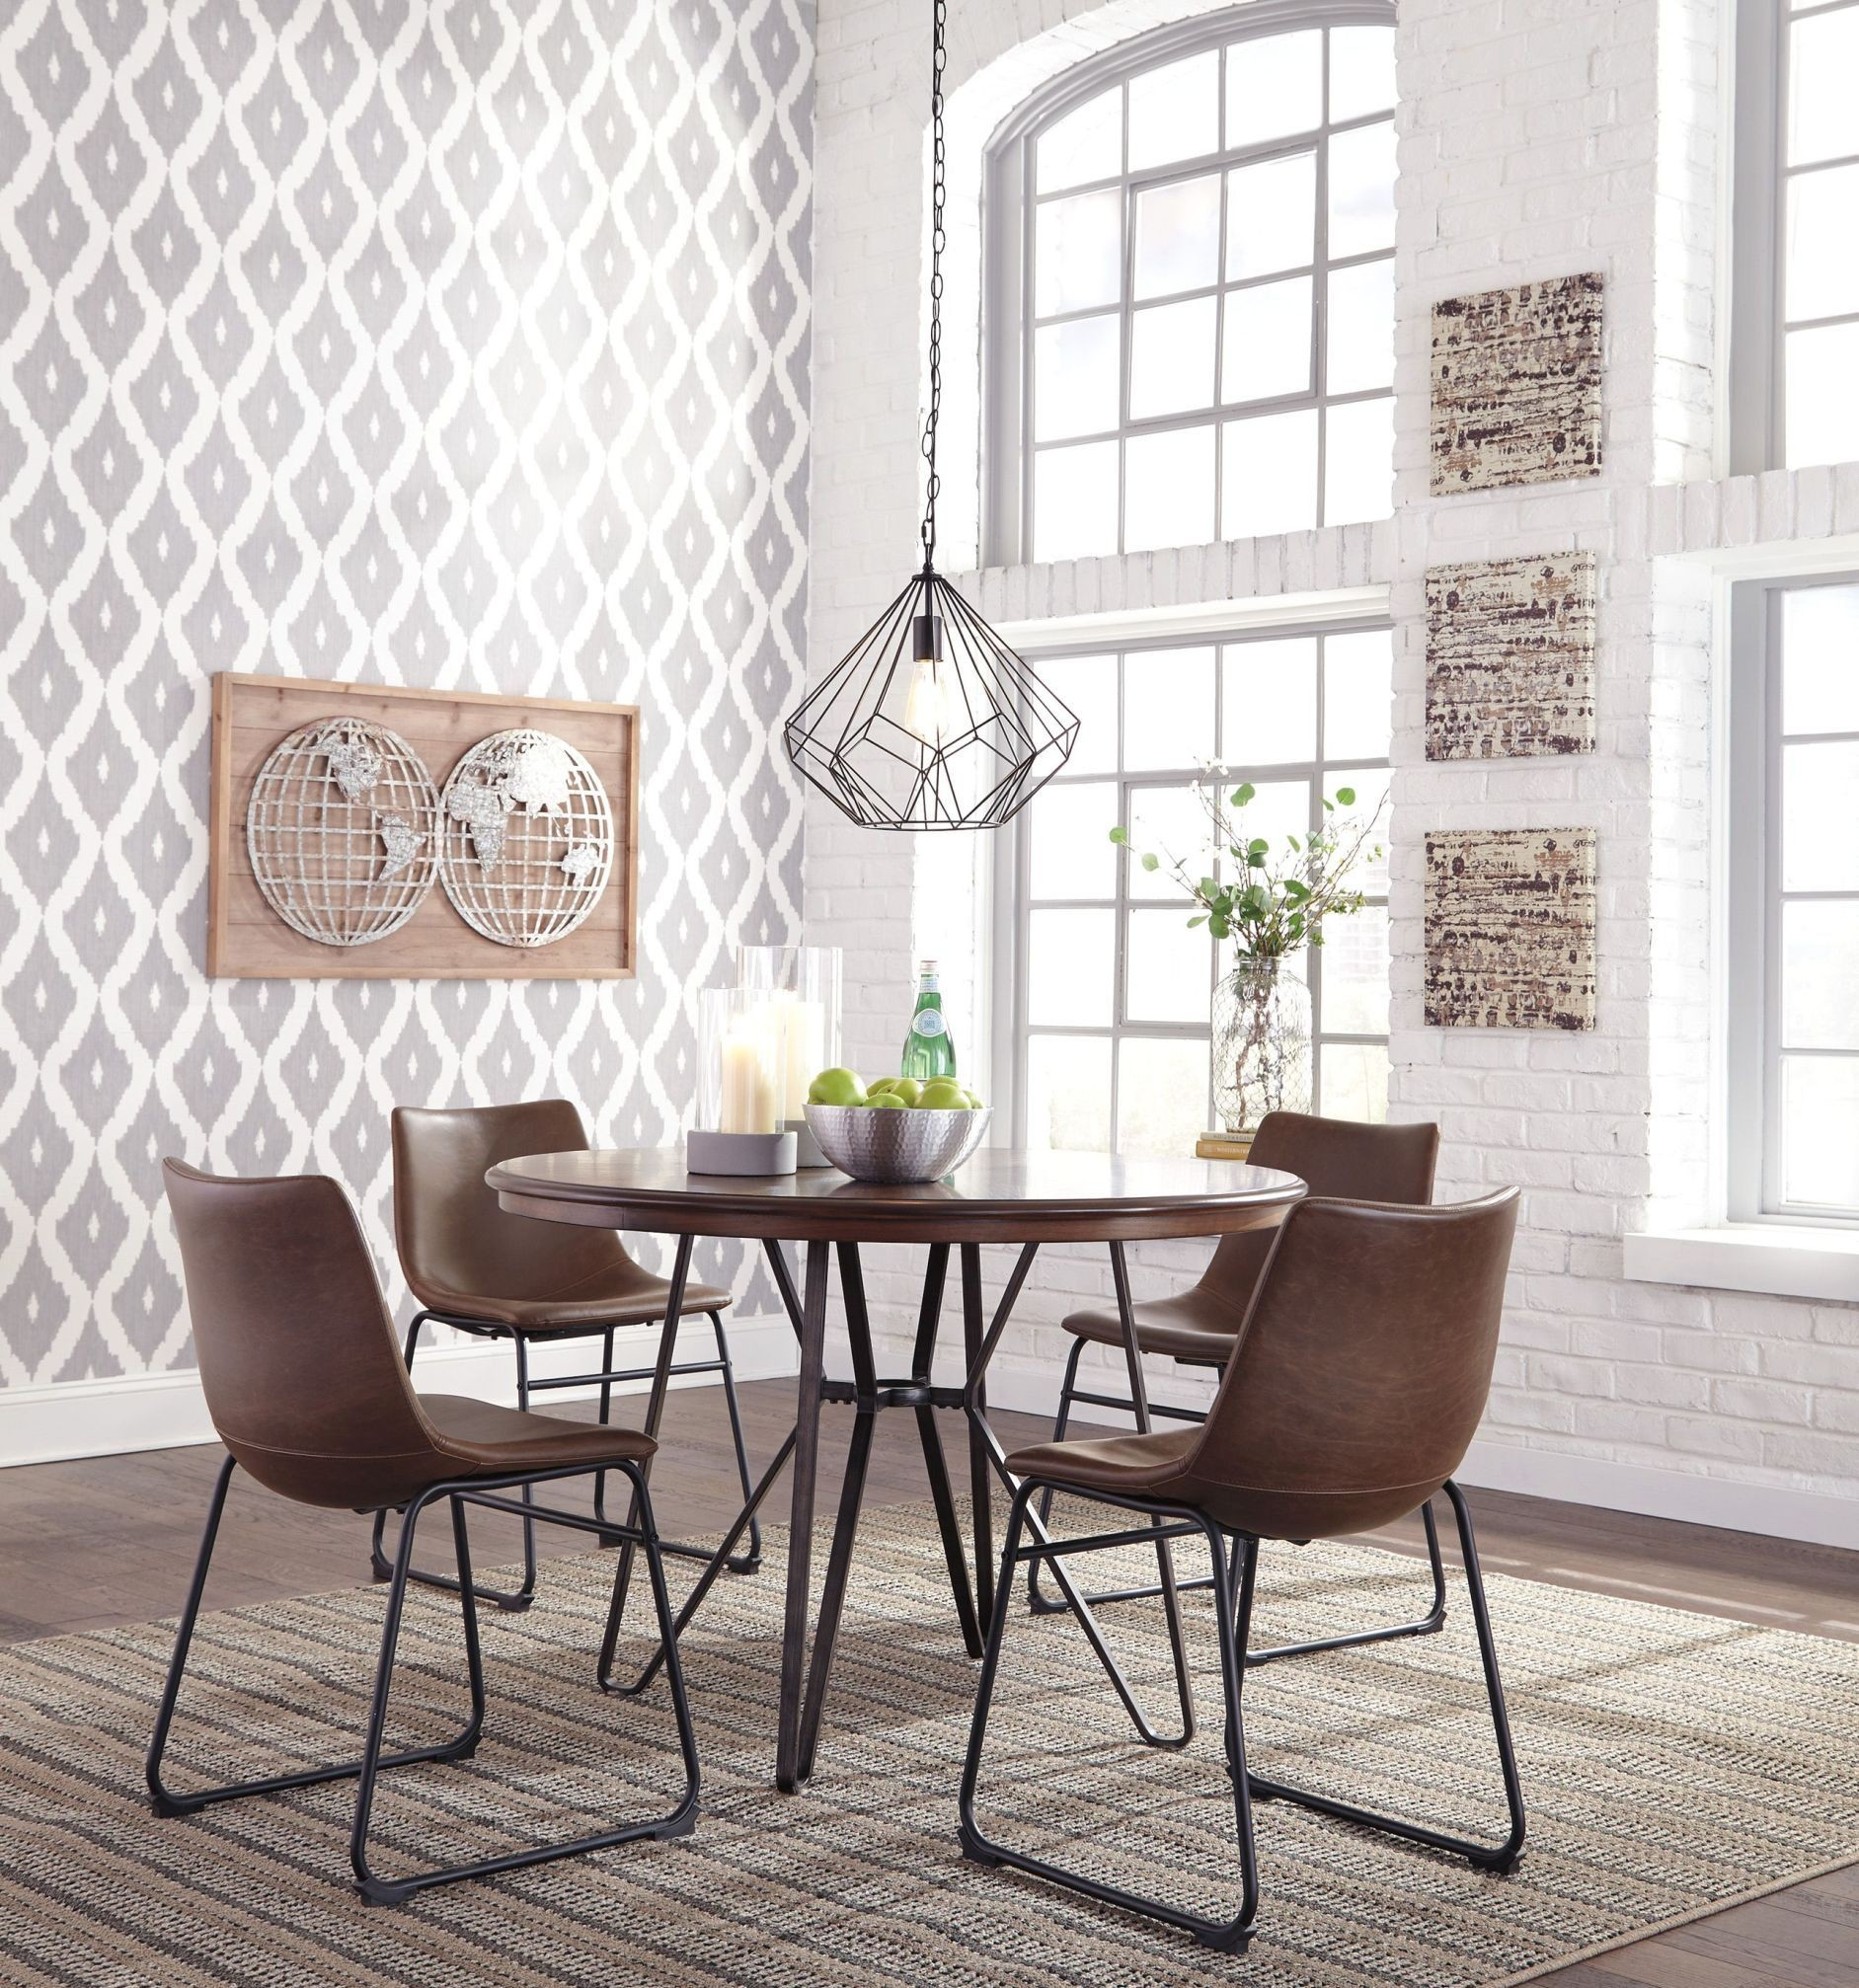 Centiar Two-Tone Brown Round Dining Room Set, D372-15, Ashley